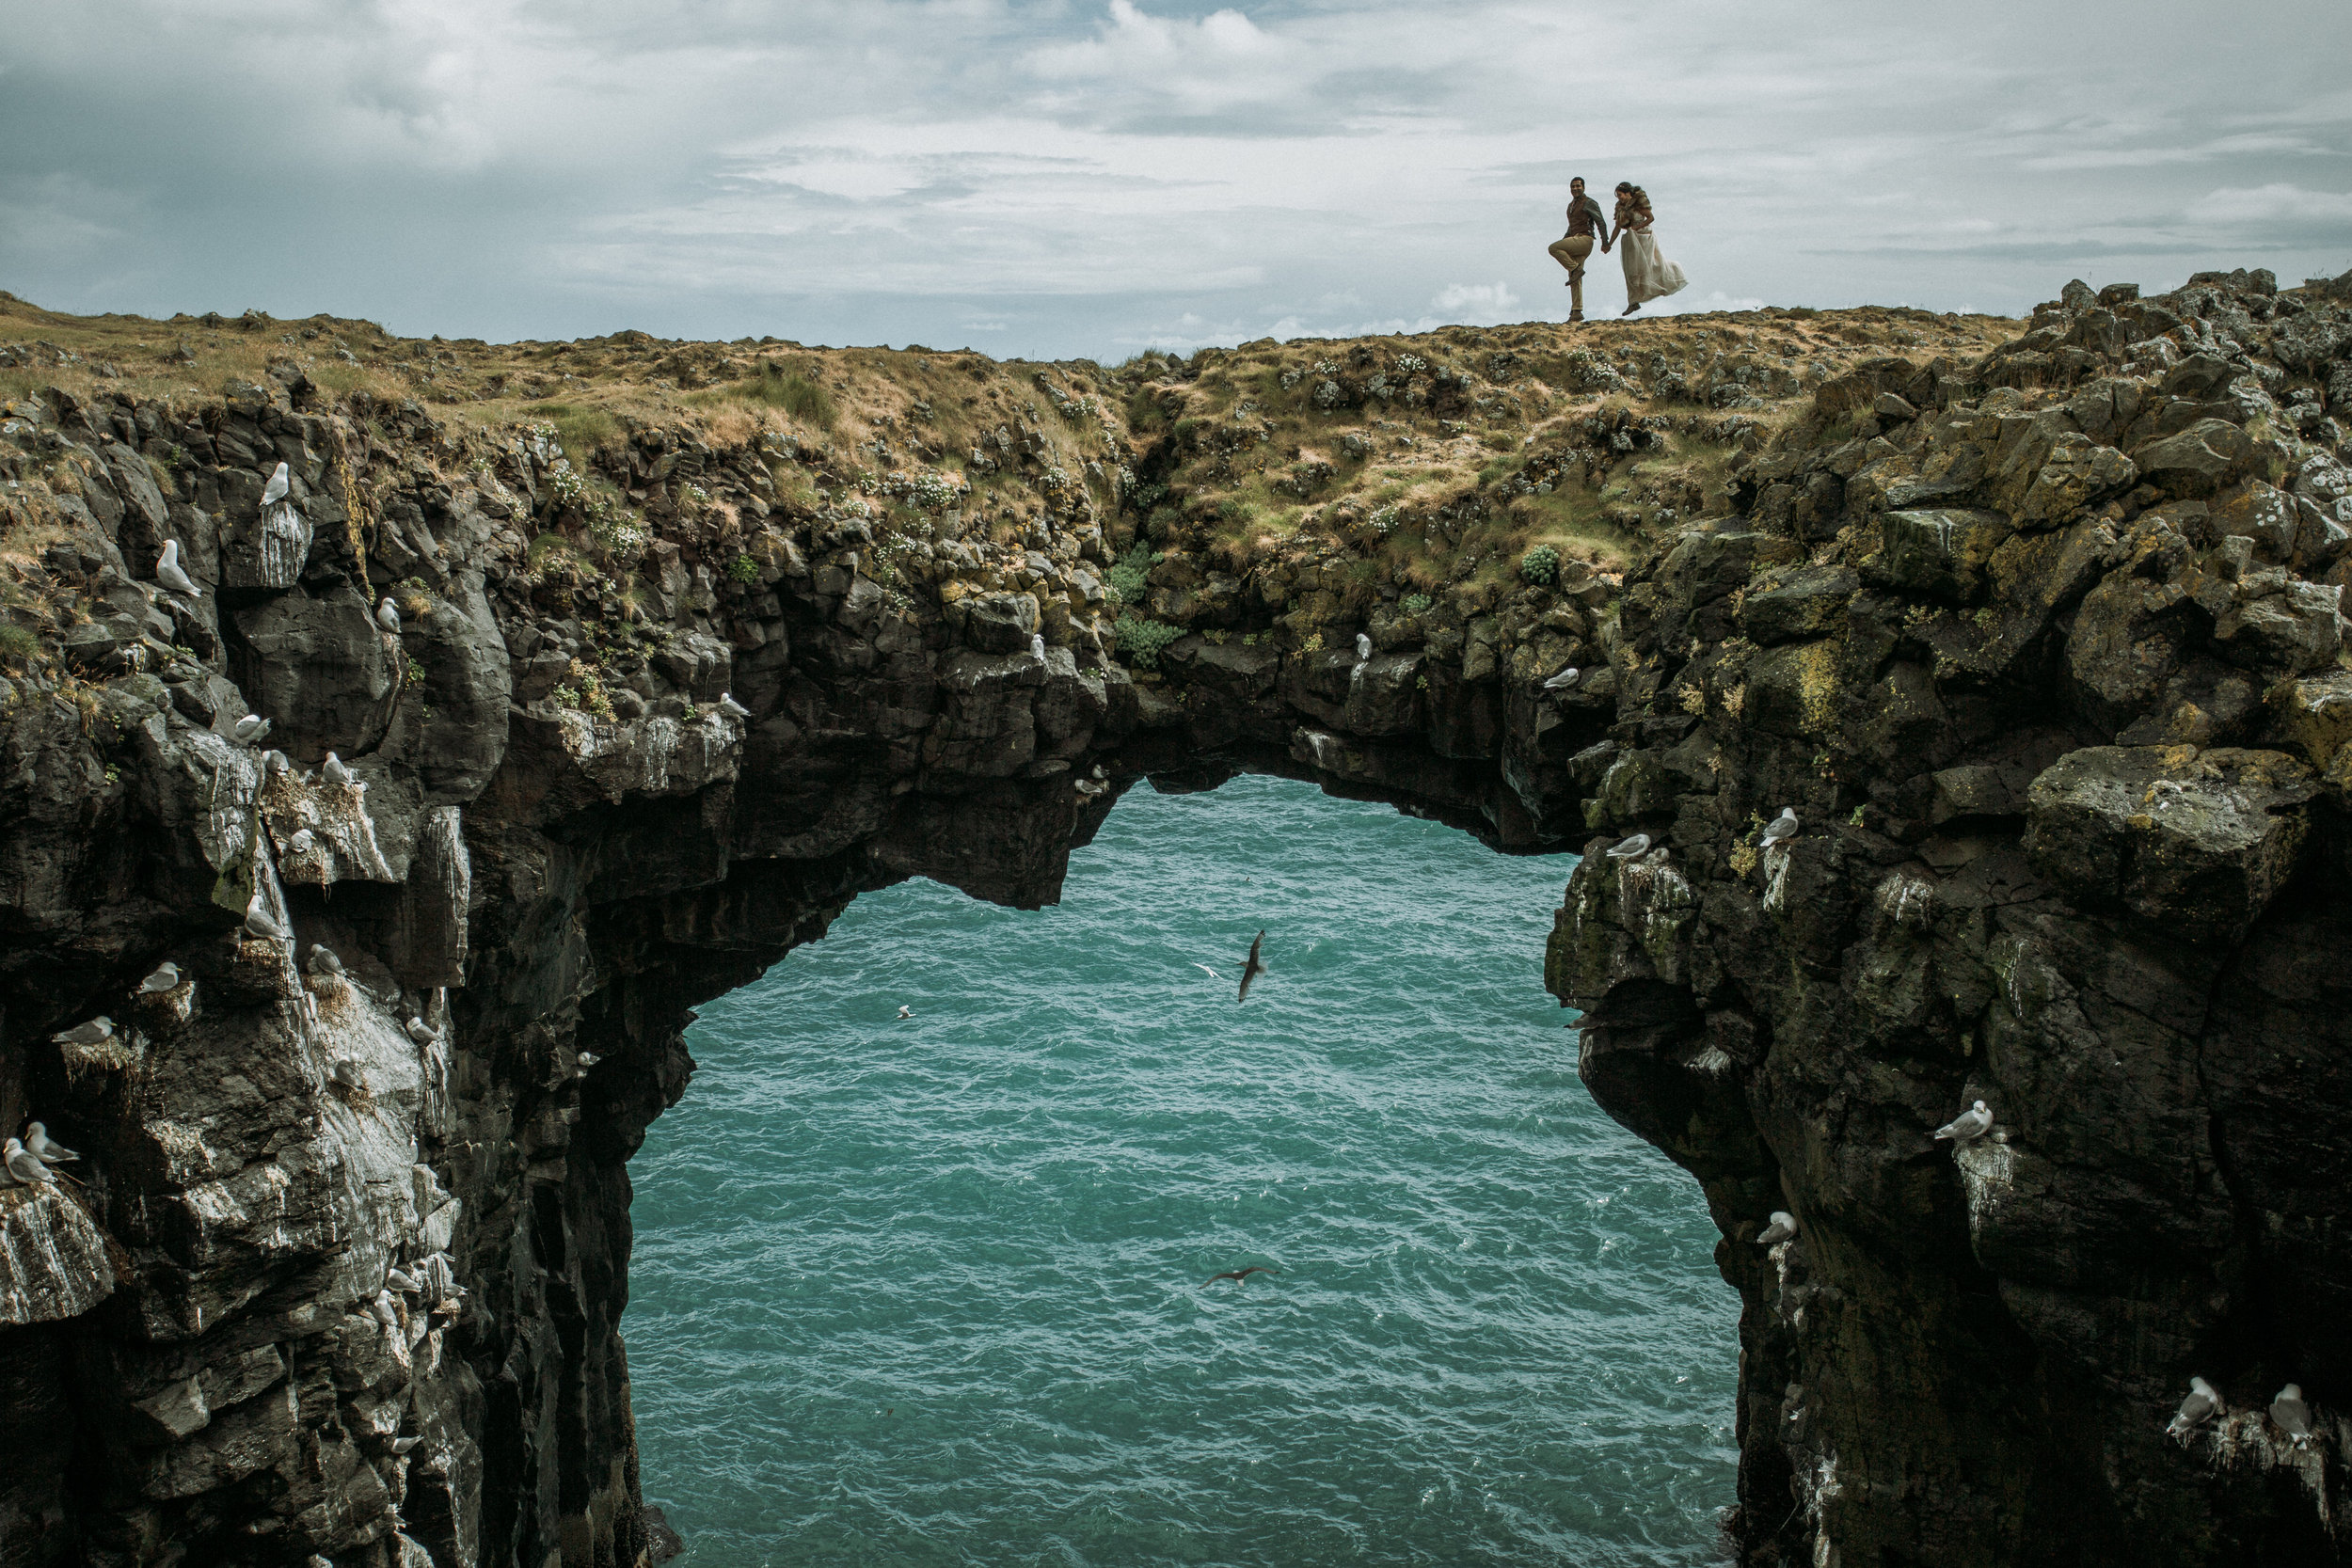 iceland sea cliff arch wedding photos